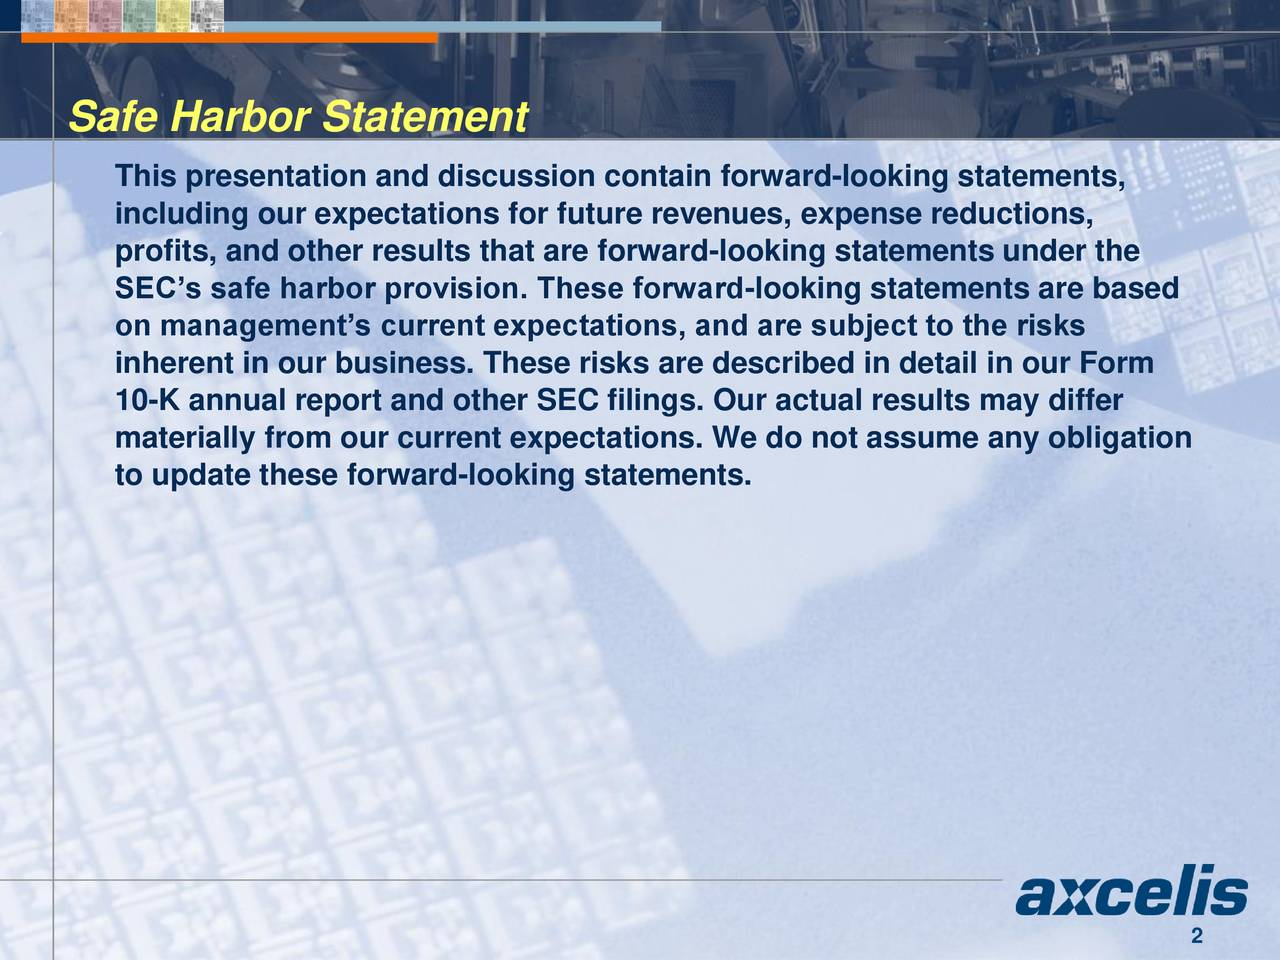 This presentation and discussion contain forward-looking statements, including our expectations for future revenues, expense reductions, profits, and other results that are forward-looking statements under the SEC's safe harbor provision. These forward-looking statements are based on management's current expectations, and are subject to the risks inherent in our business. These risks are described in detail in our Form 10-K annual report and other SEC filings. Our actual results may differ materially from our current expectations. We do not assume any obligation to update these forward-looking statements. 2